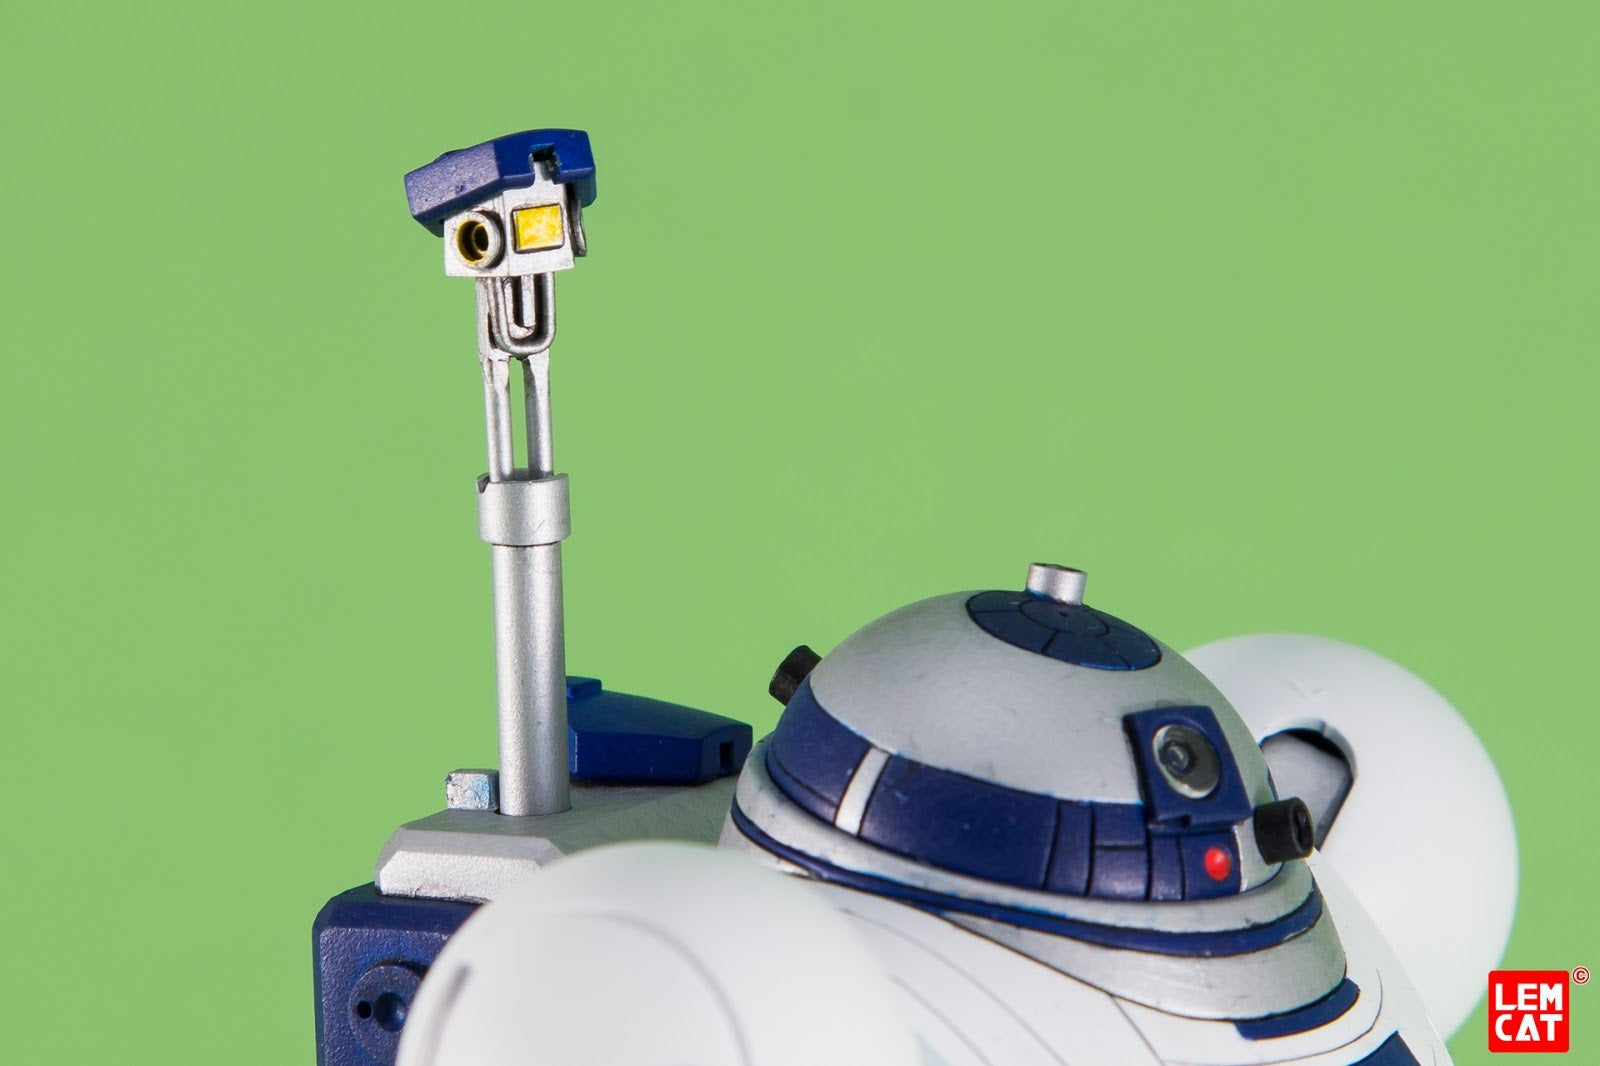 R2-D2 Has Been Lifting, Bro